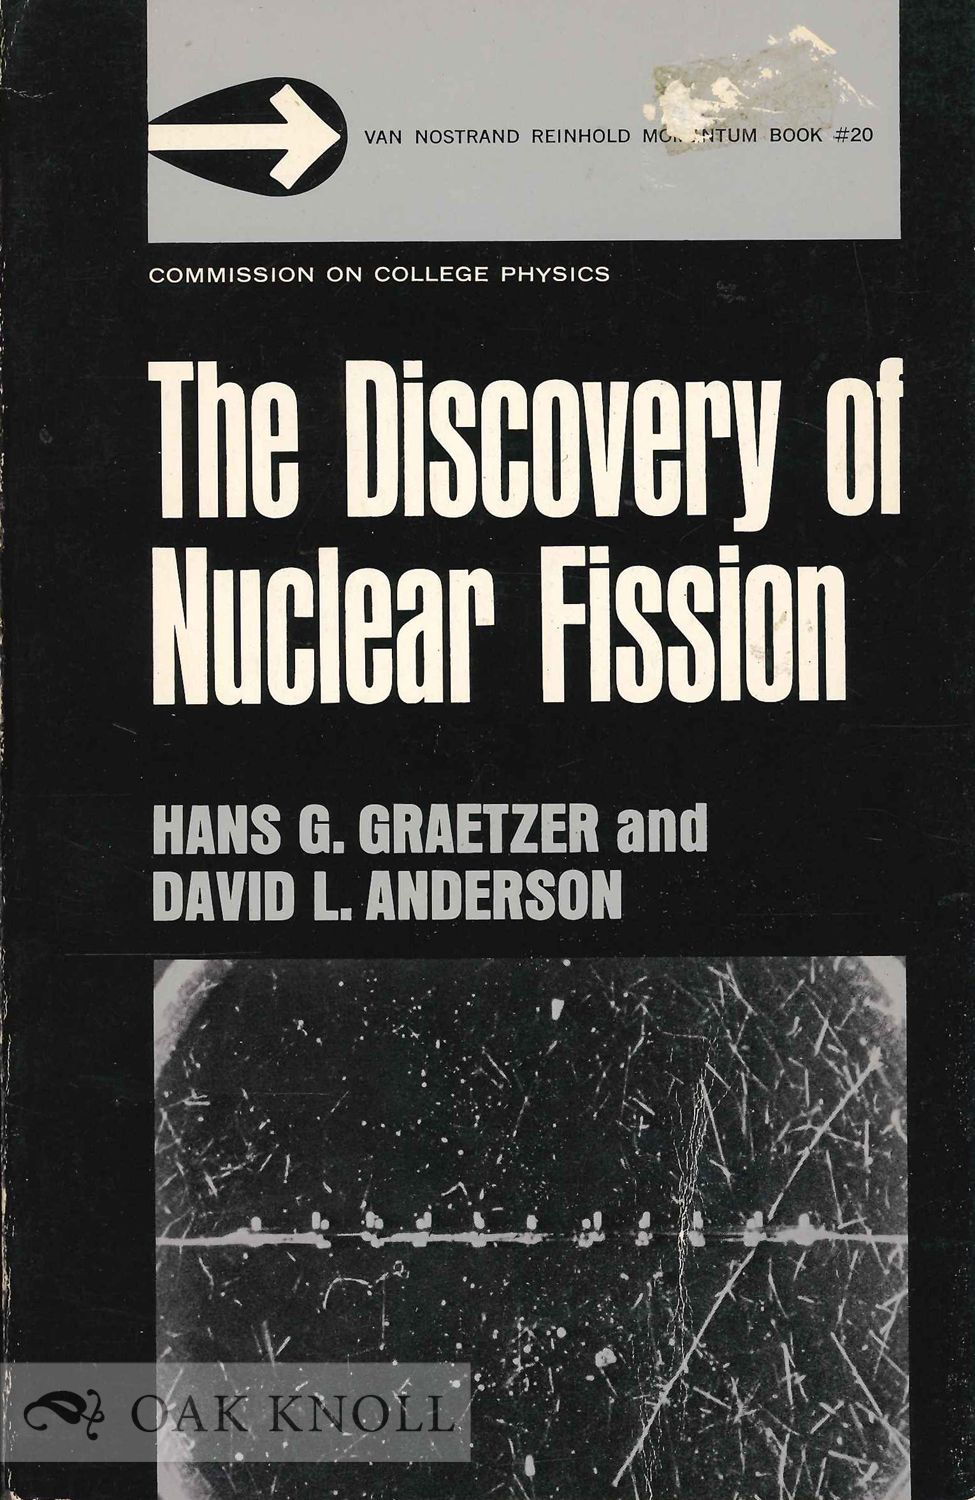 THE DISCOVERY OF NUCLEAR FISSION: A DOCUMENTARY HISTORY by Hans G   Graetzer, David L  Anderson on Oak Knoll